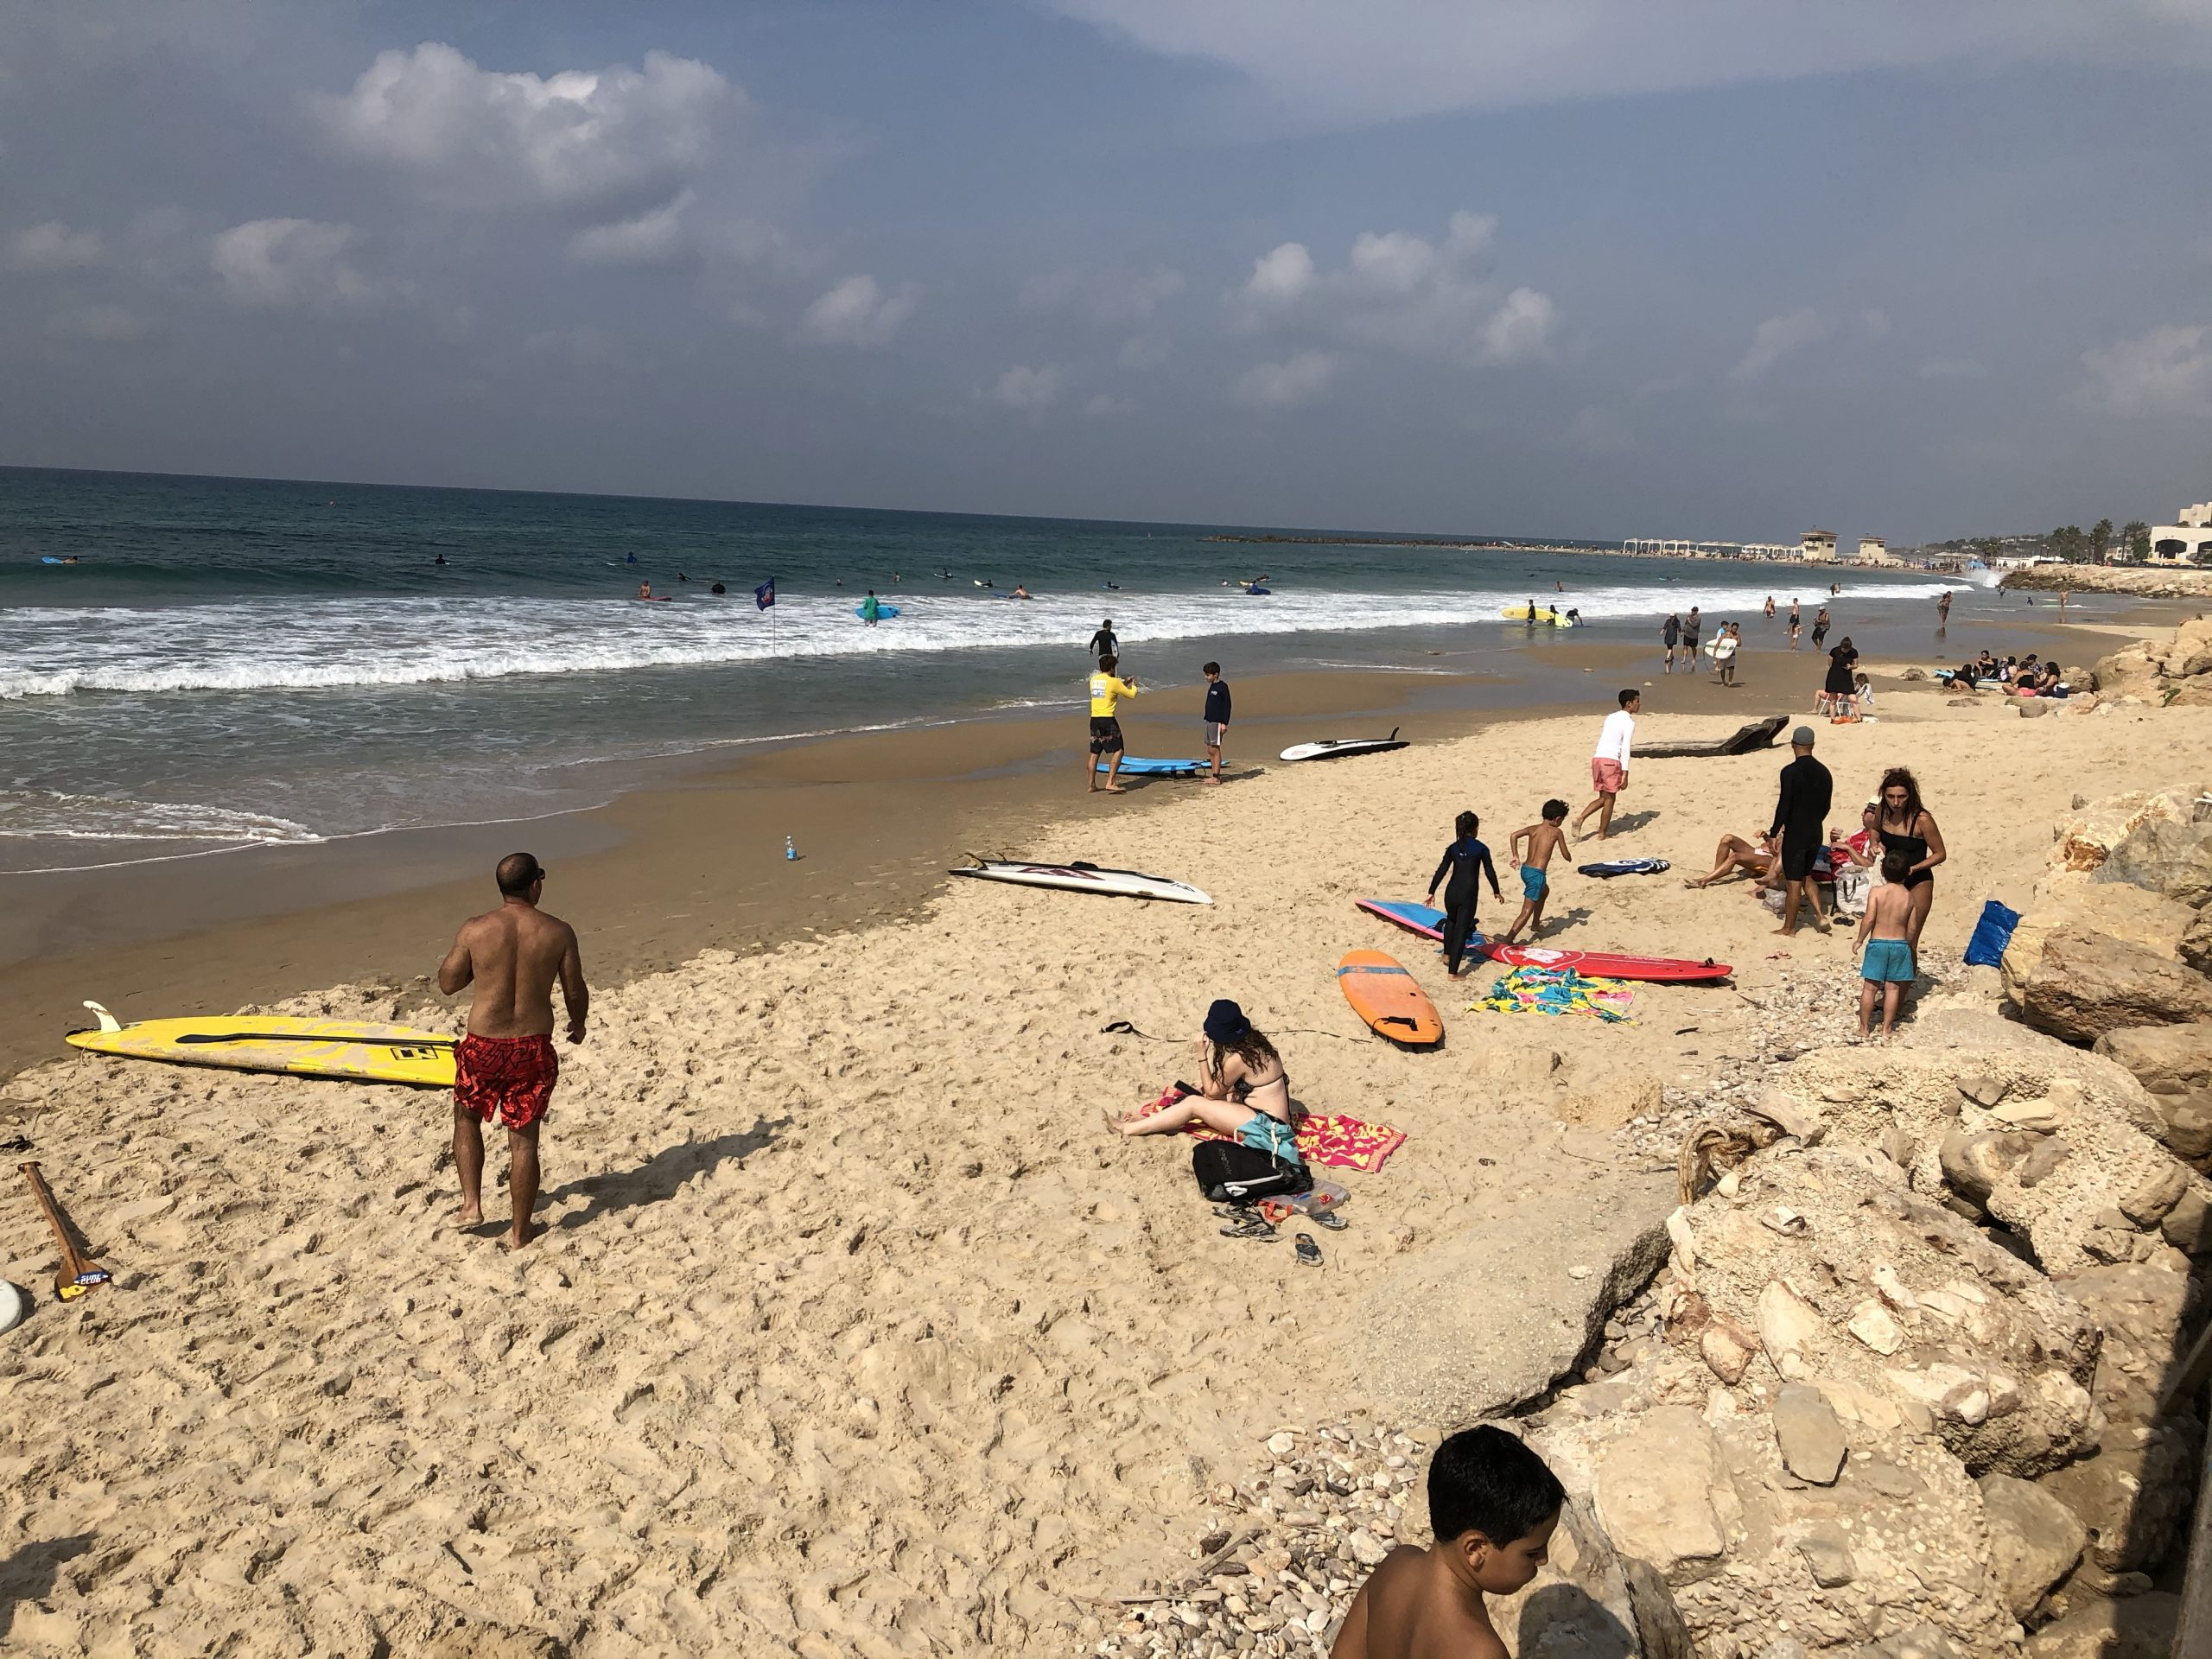 Israeli Beaches Reopening After Lockdown